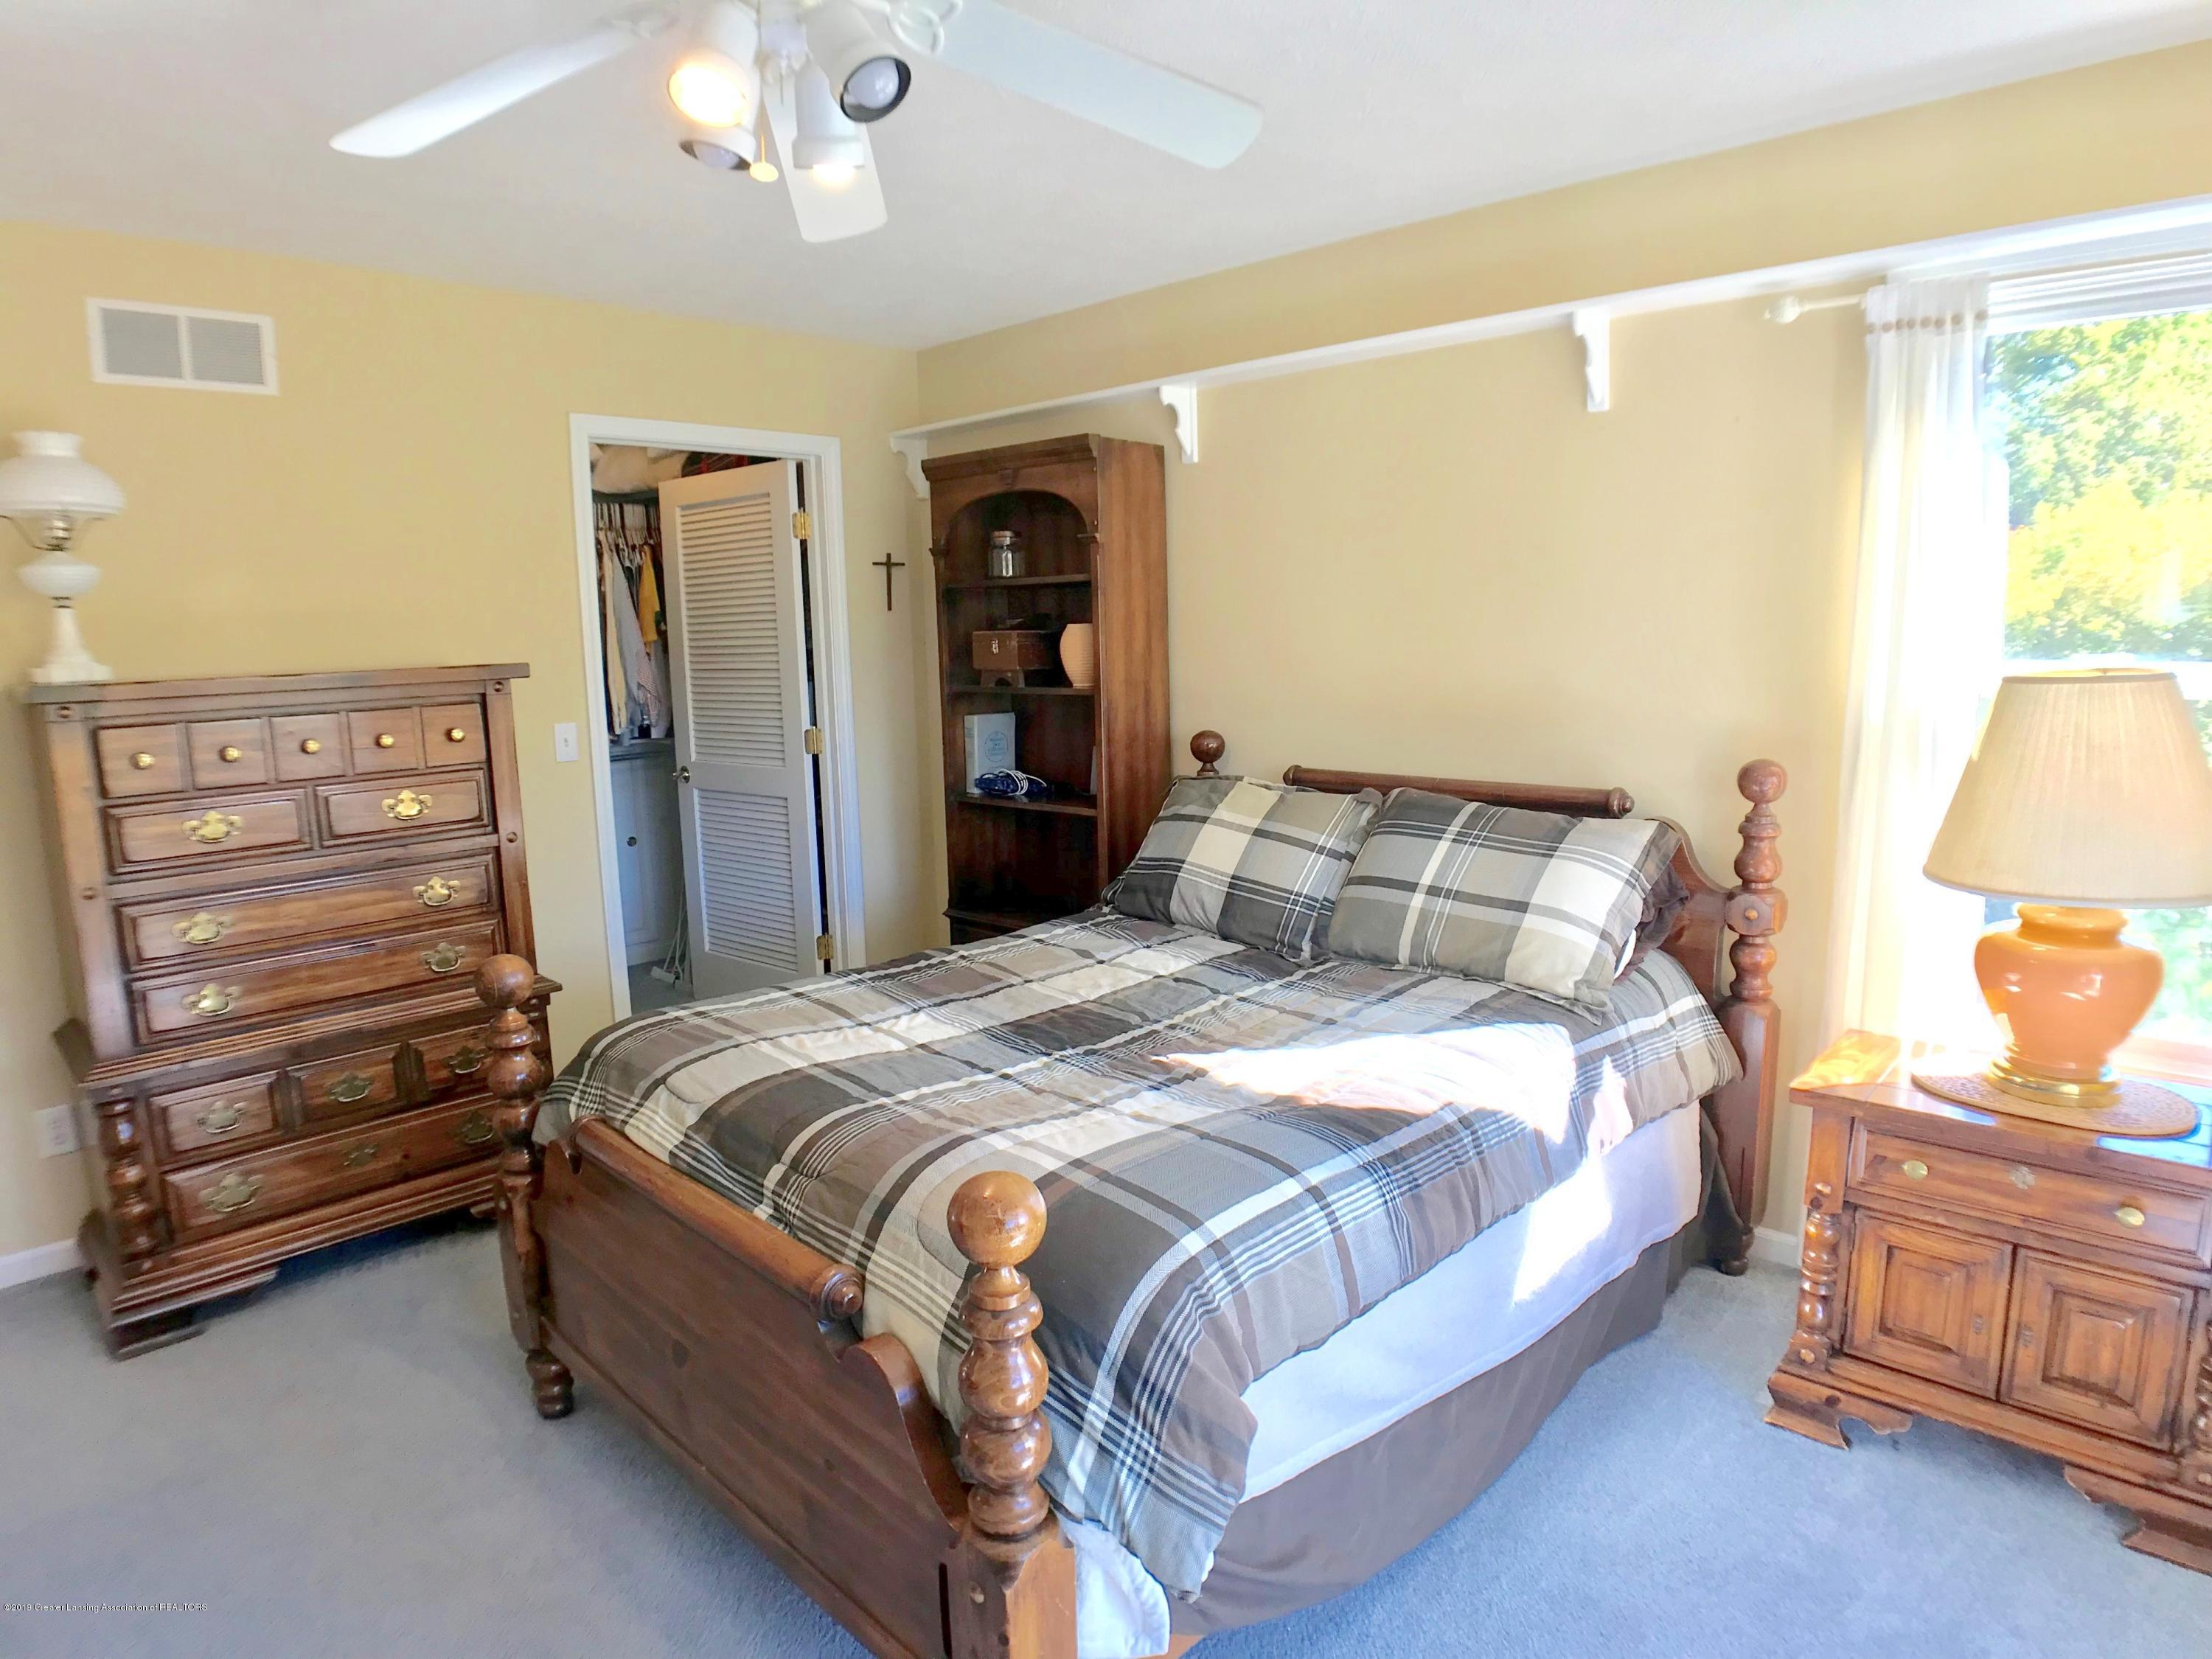 6430 Quail Ridge Ln - Bedroom - 35